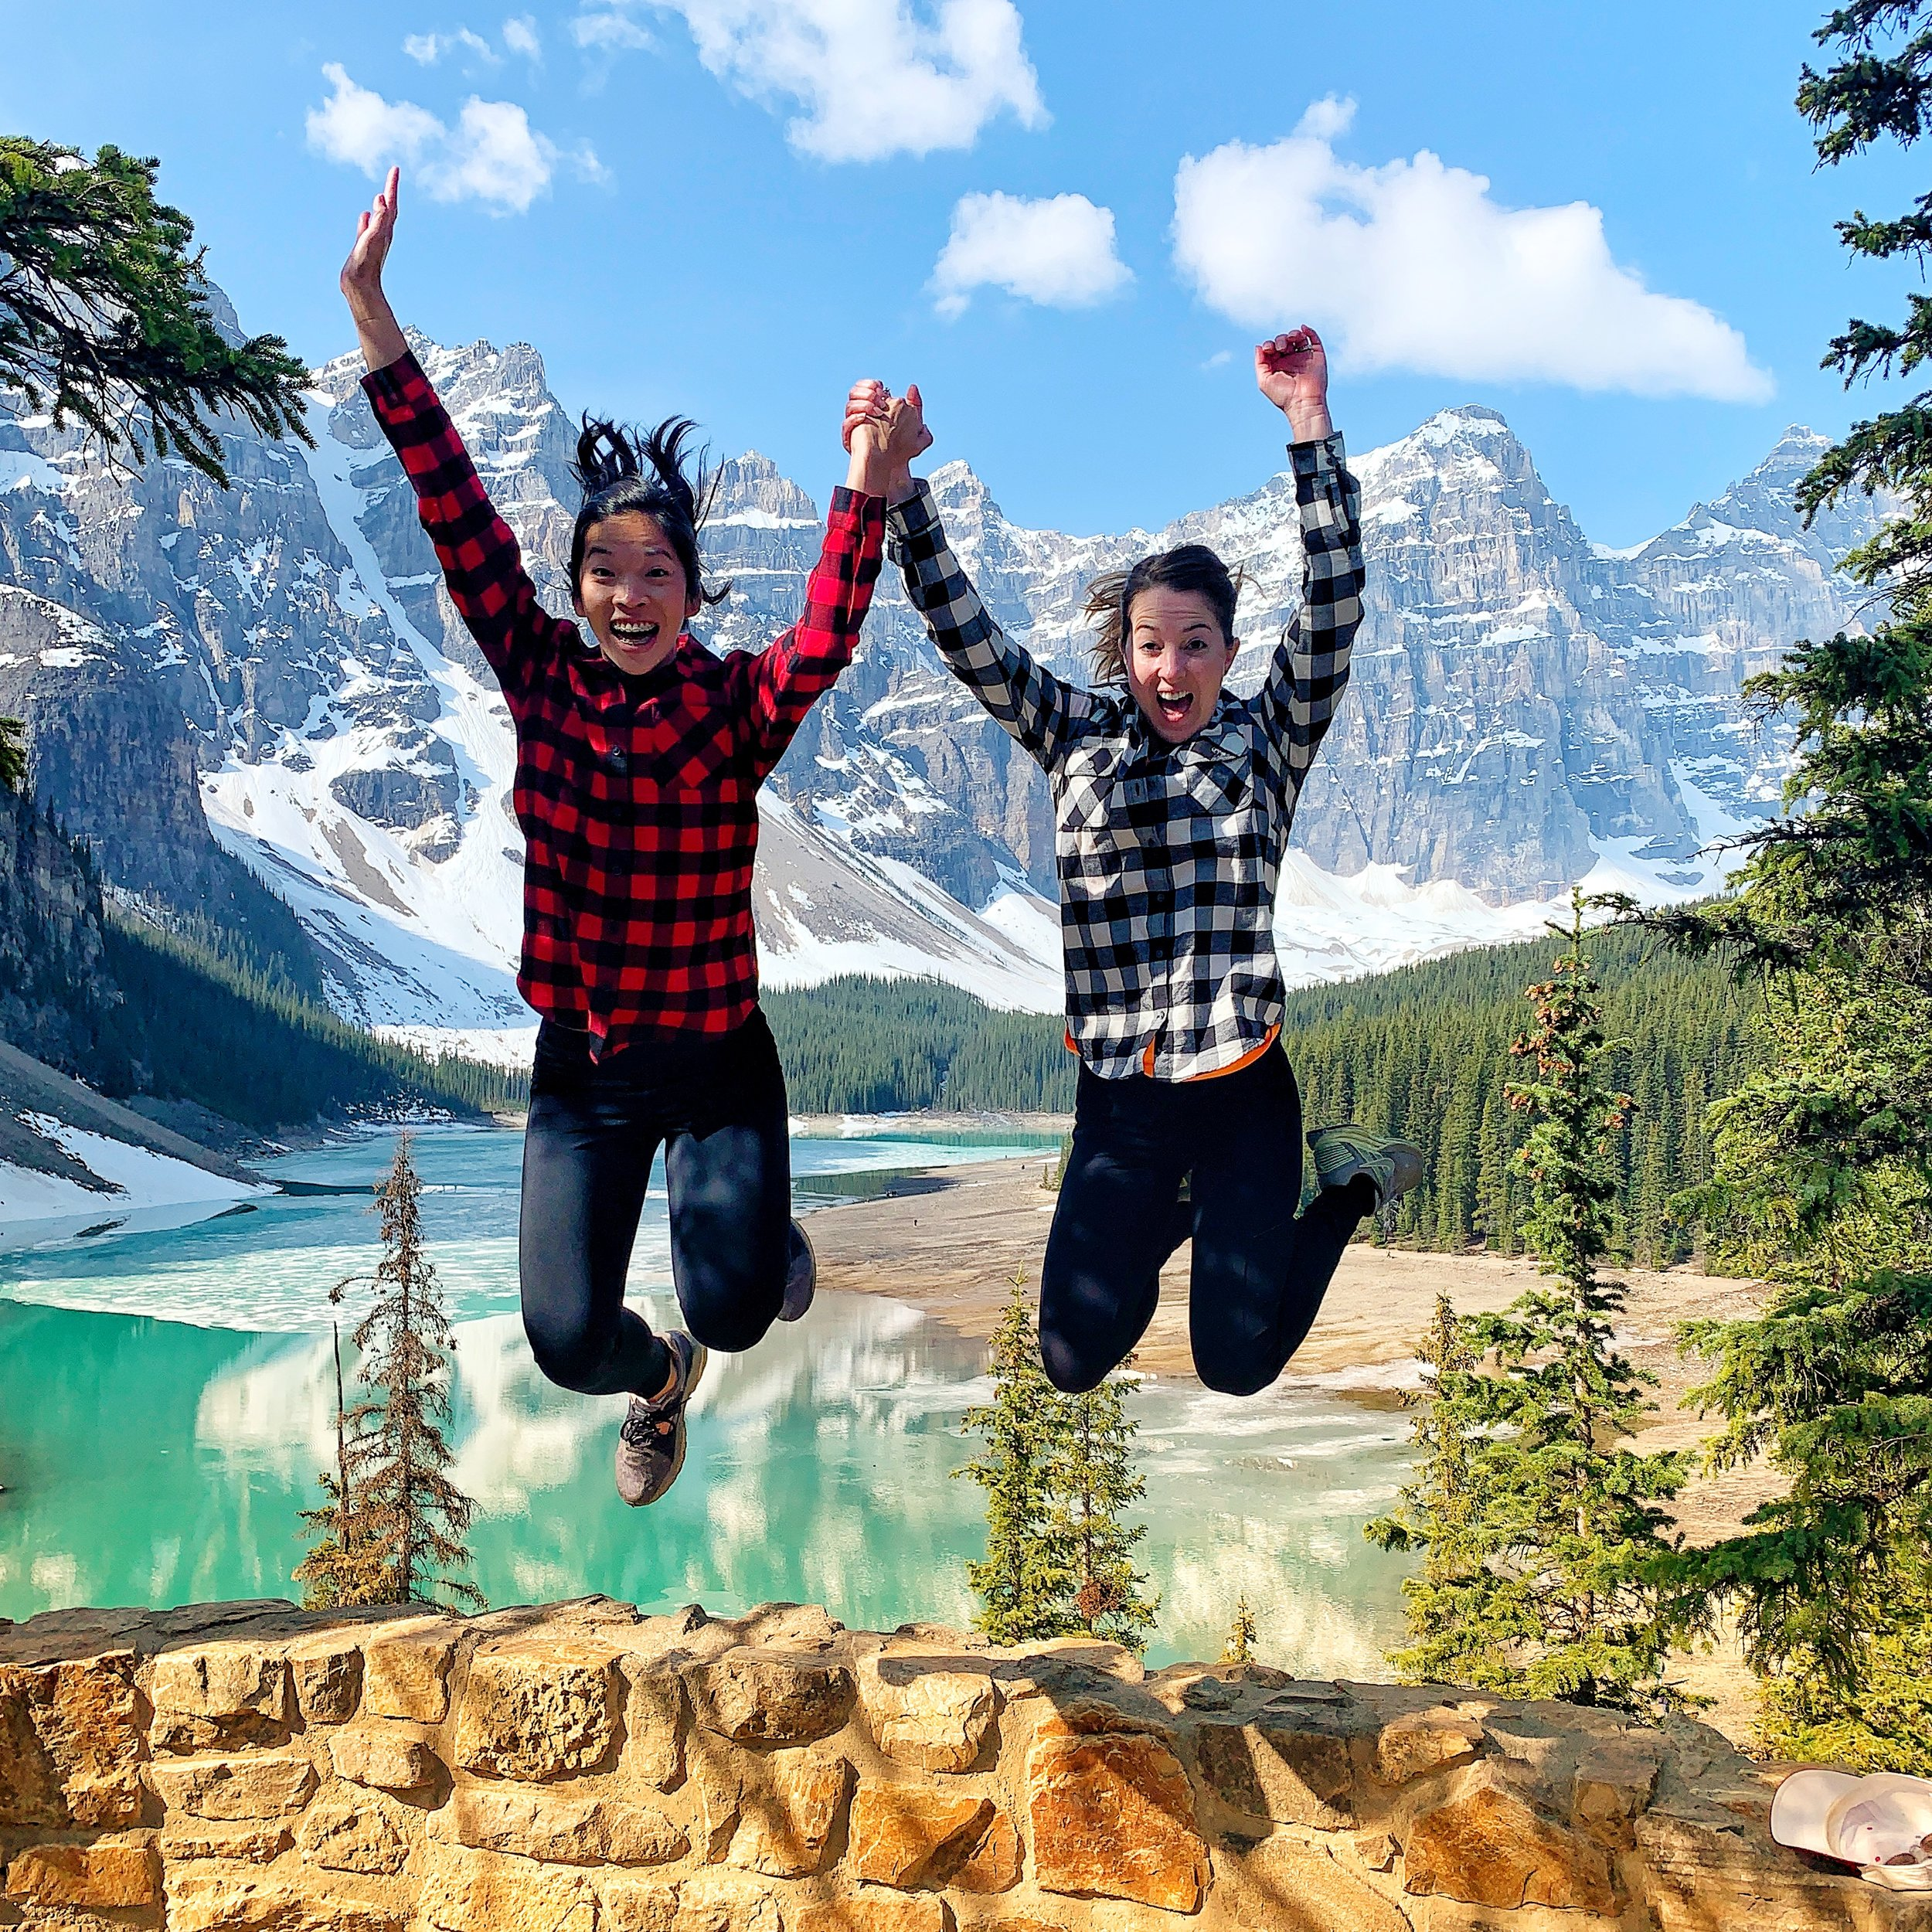 Hanging out with the bride-to-be in Banff, Canada.